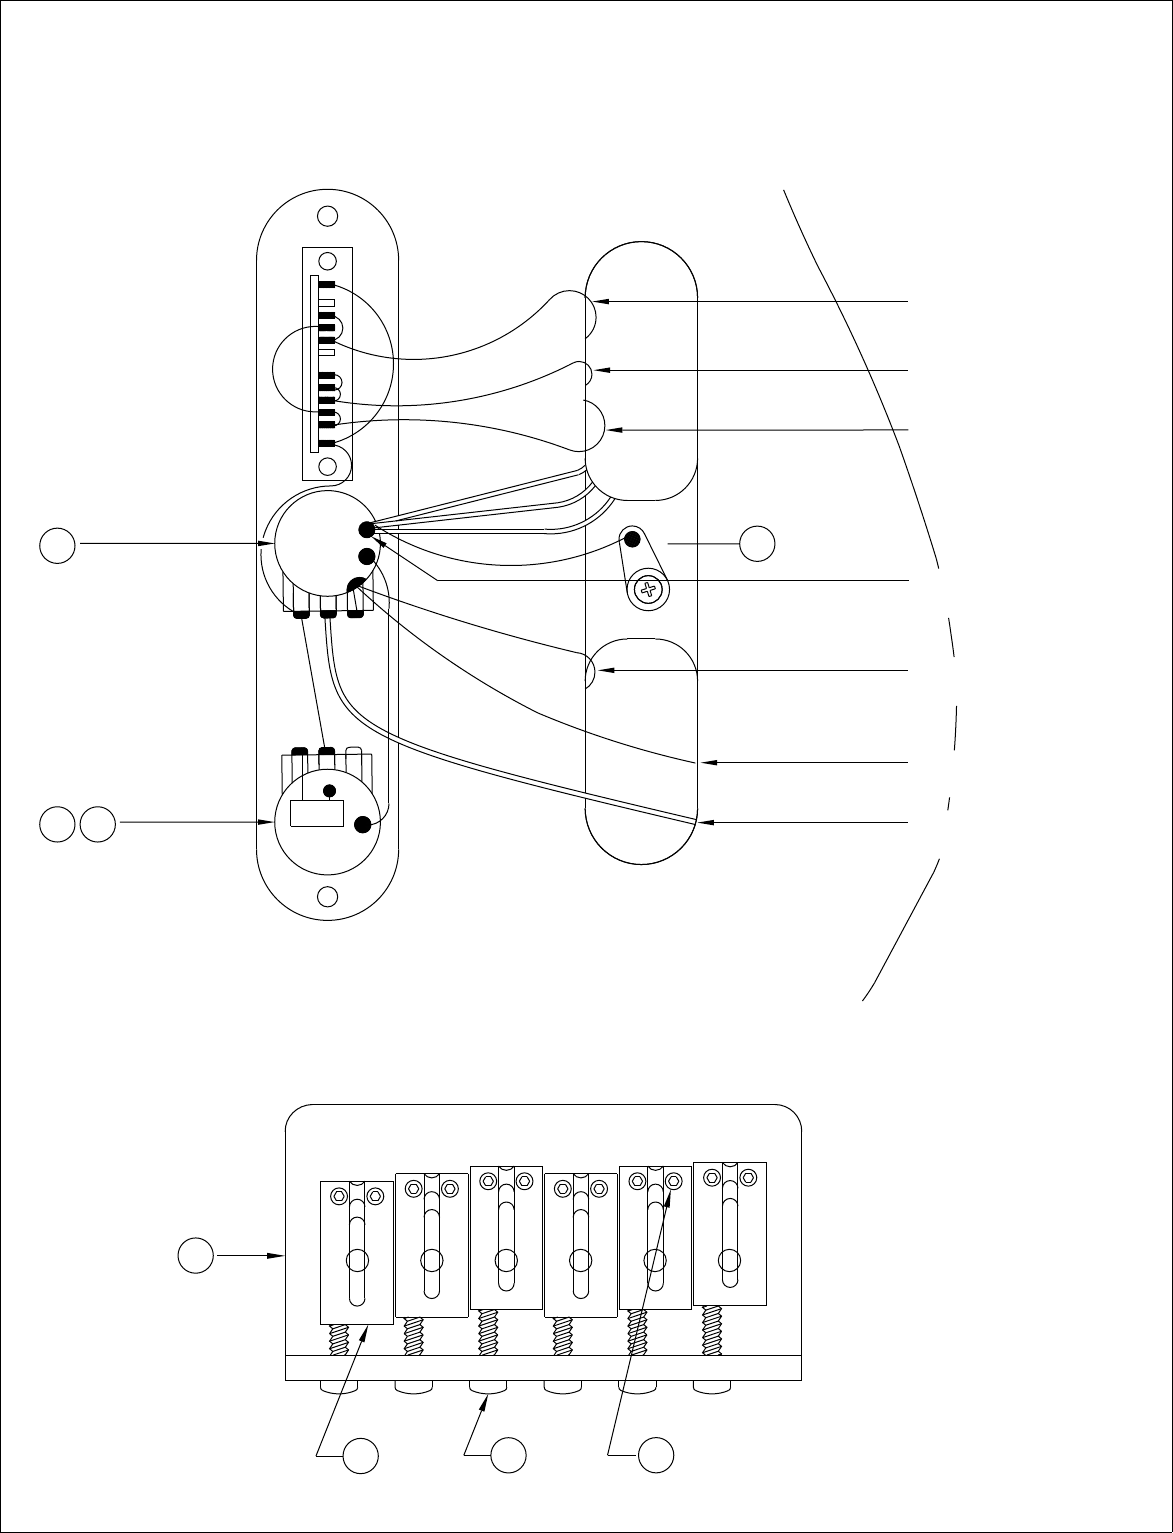 Fender 010 8602A SISD on stratocaster wiring-diagram, james burton t-shirt, james burton tele, james burton today,